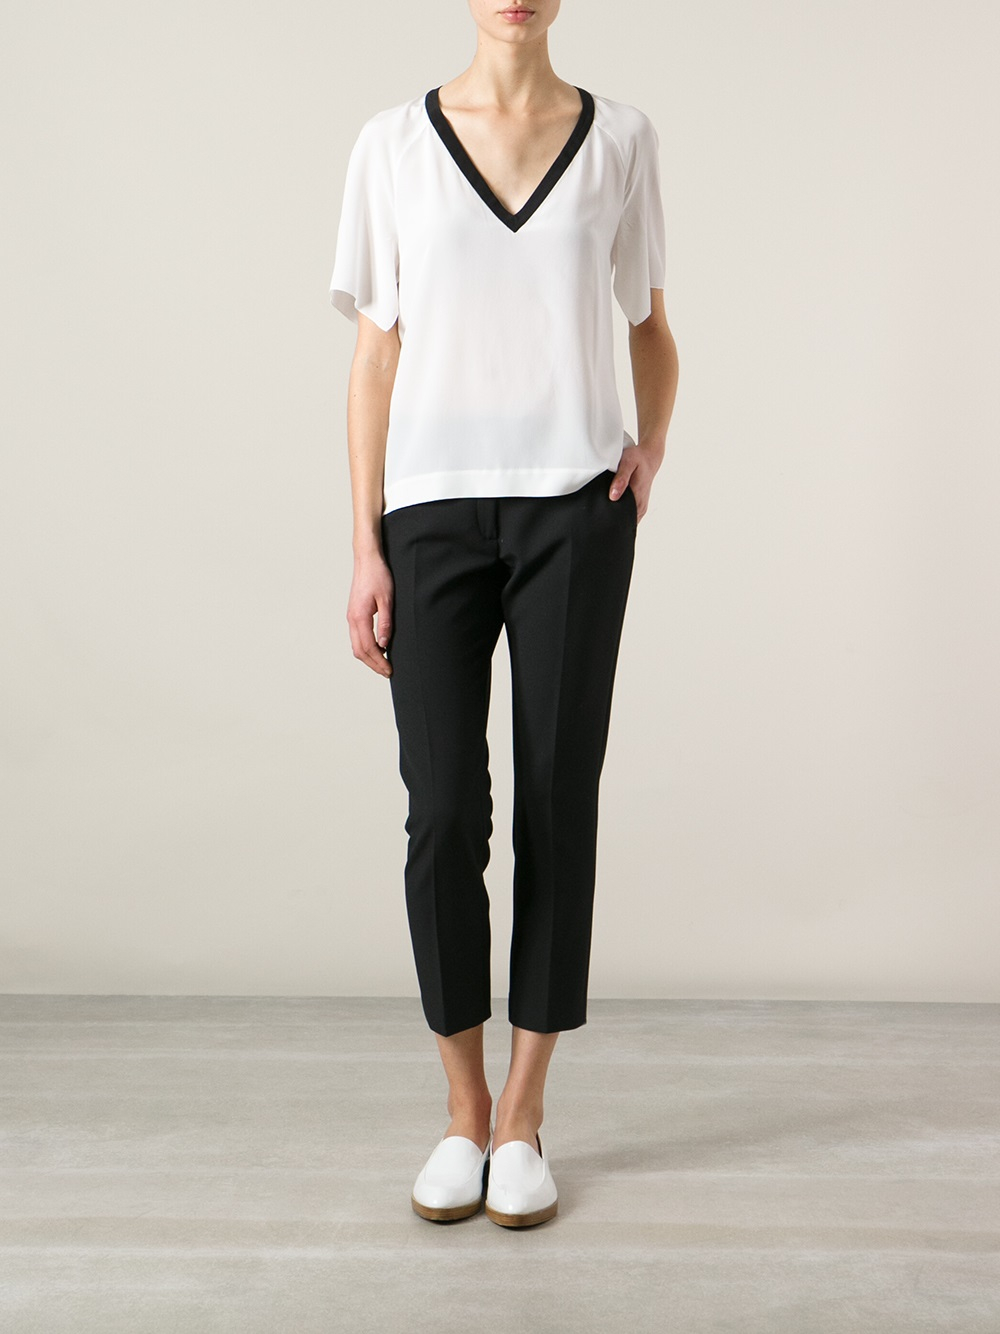 world-wide selection of hot products delicate colors JOSEPH Black Queen Trousers